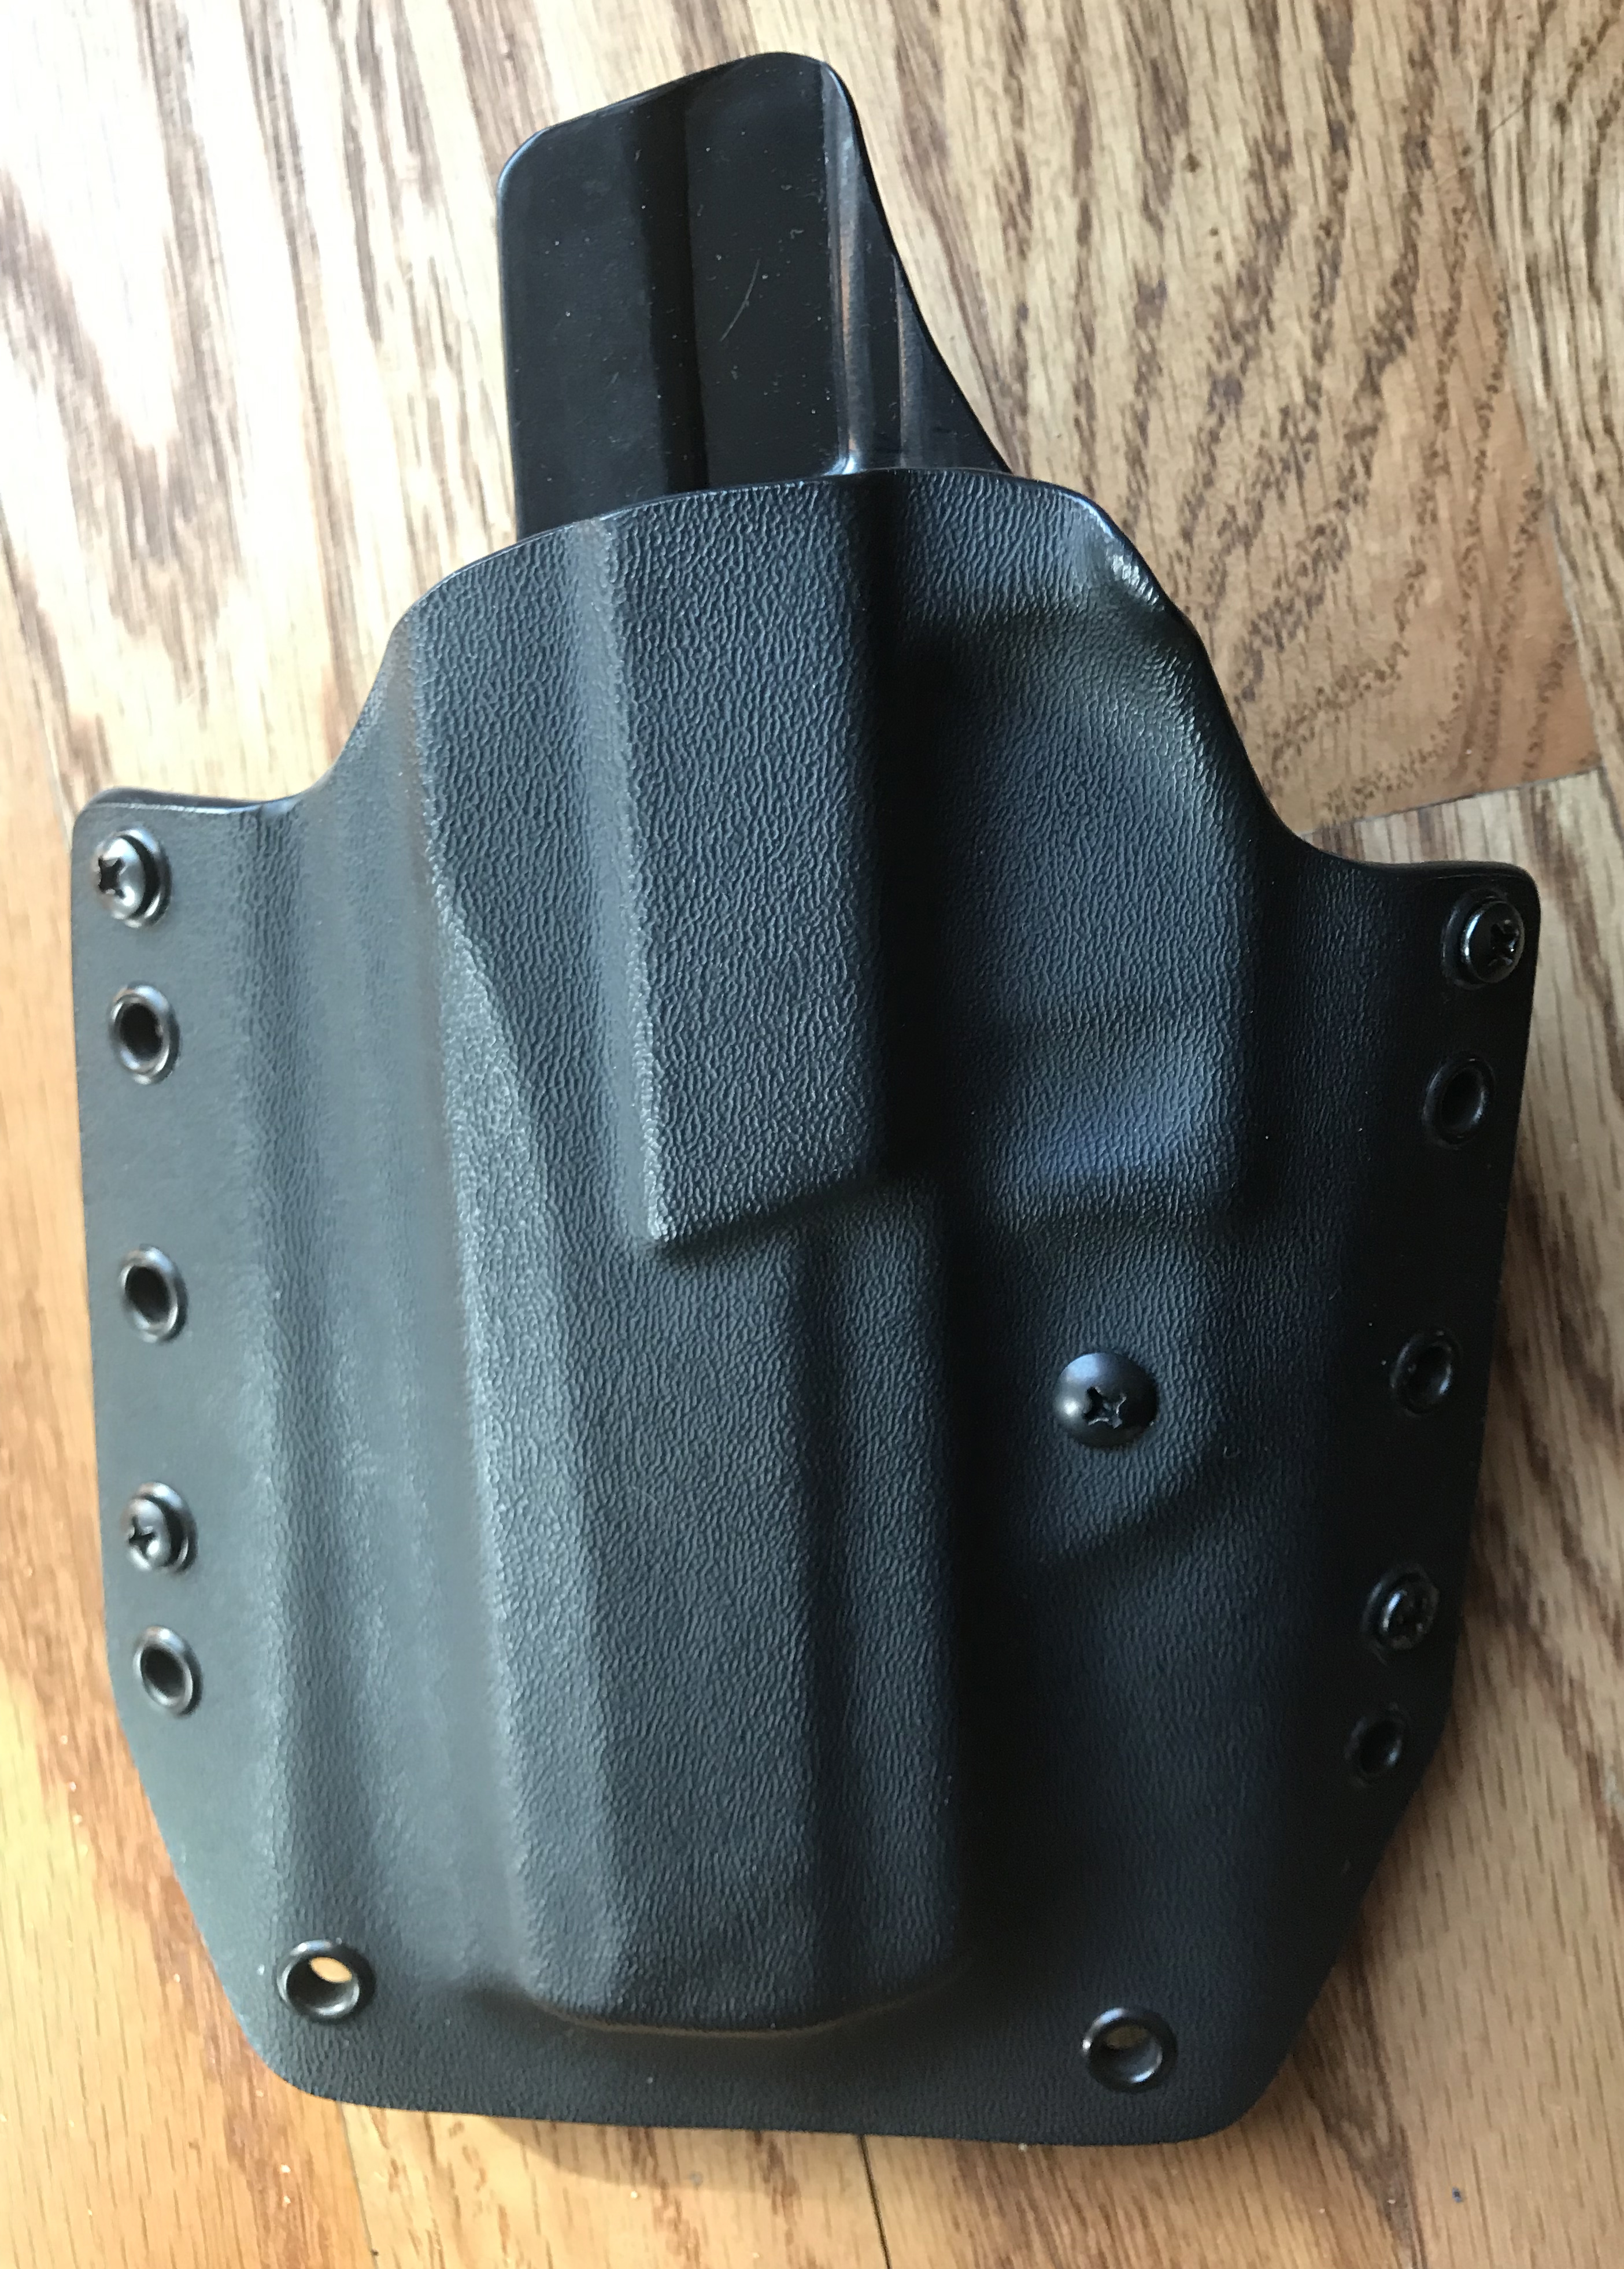 Vedder LightDraw OWB Left hand holster for P320 full size-vedderowb-lighttuck.2.jpg